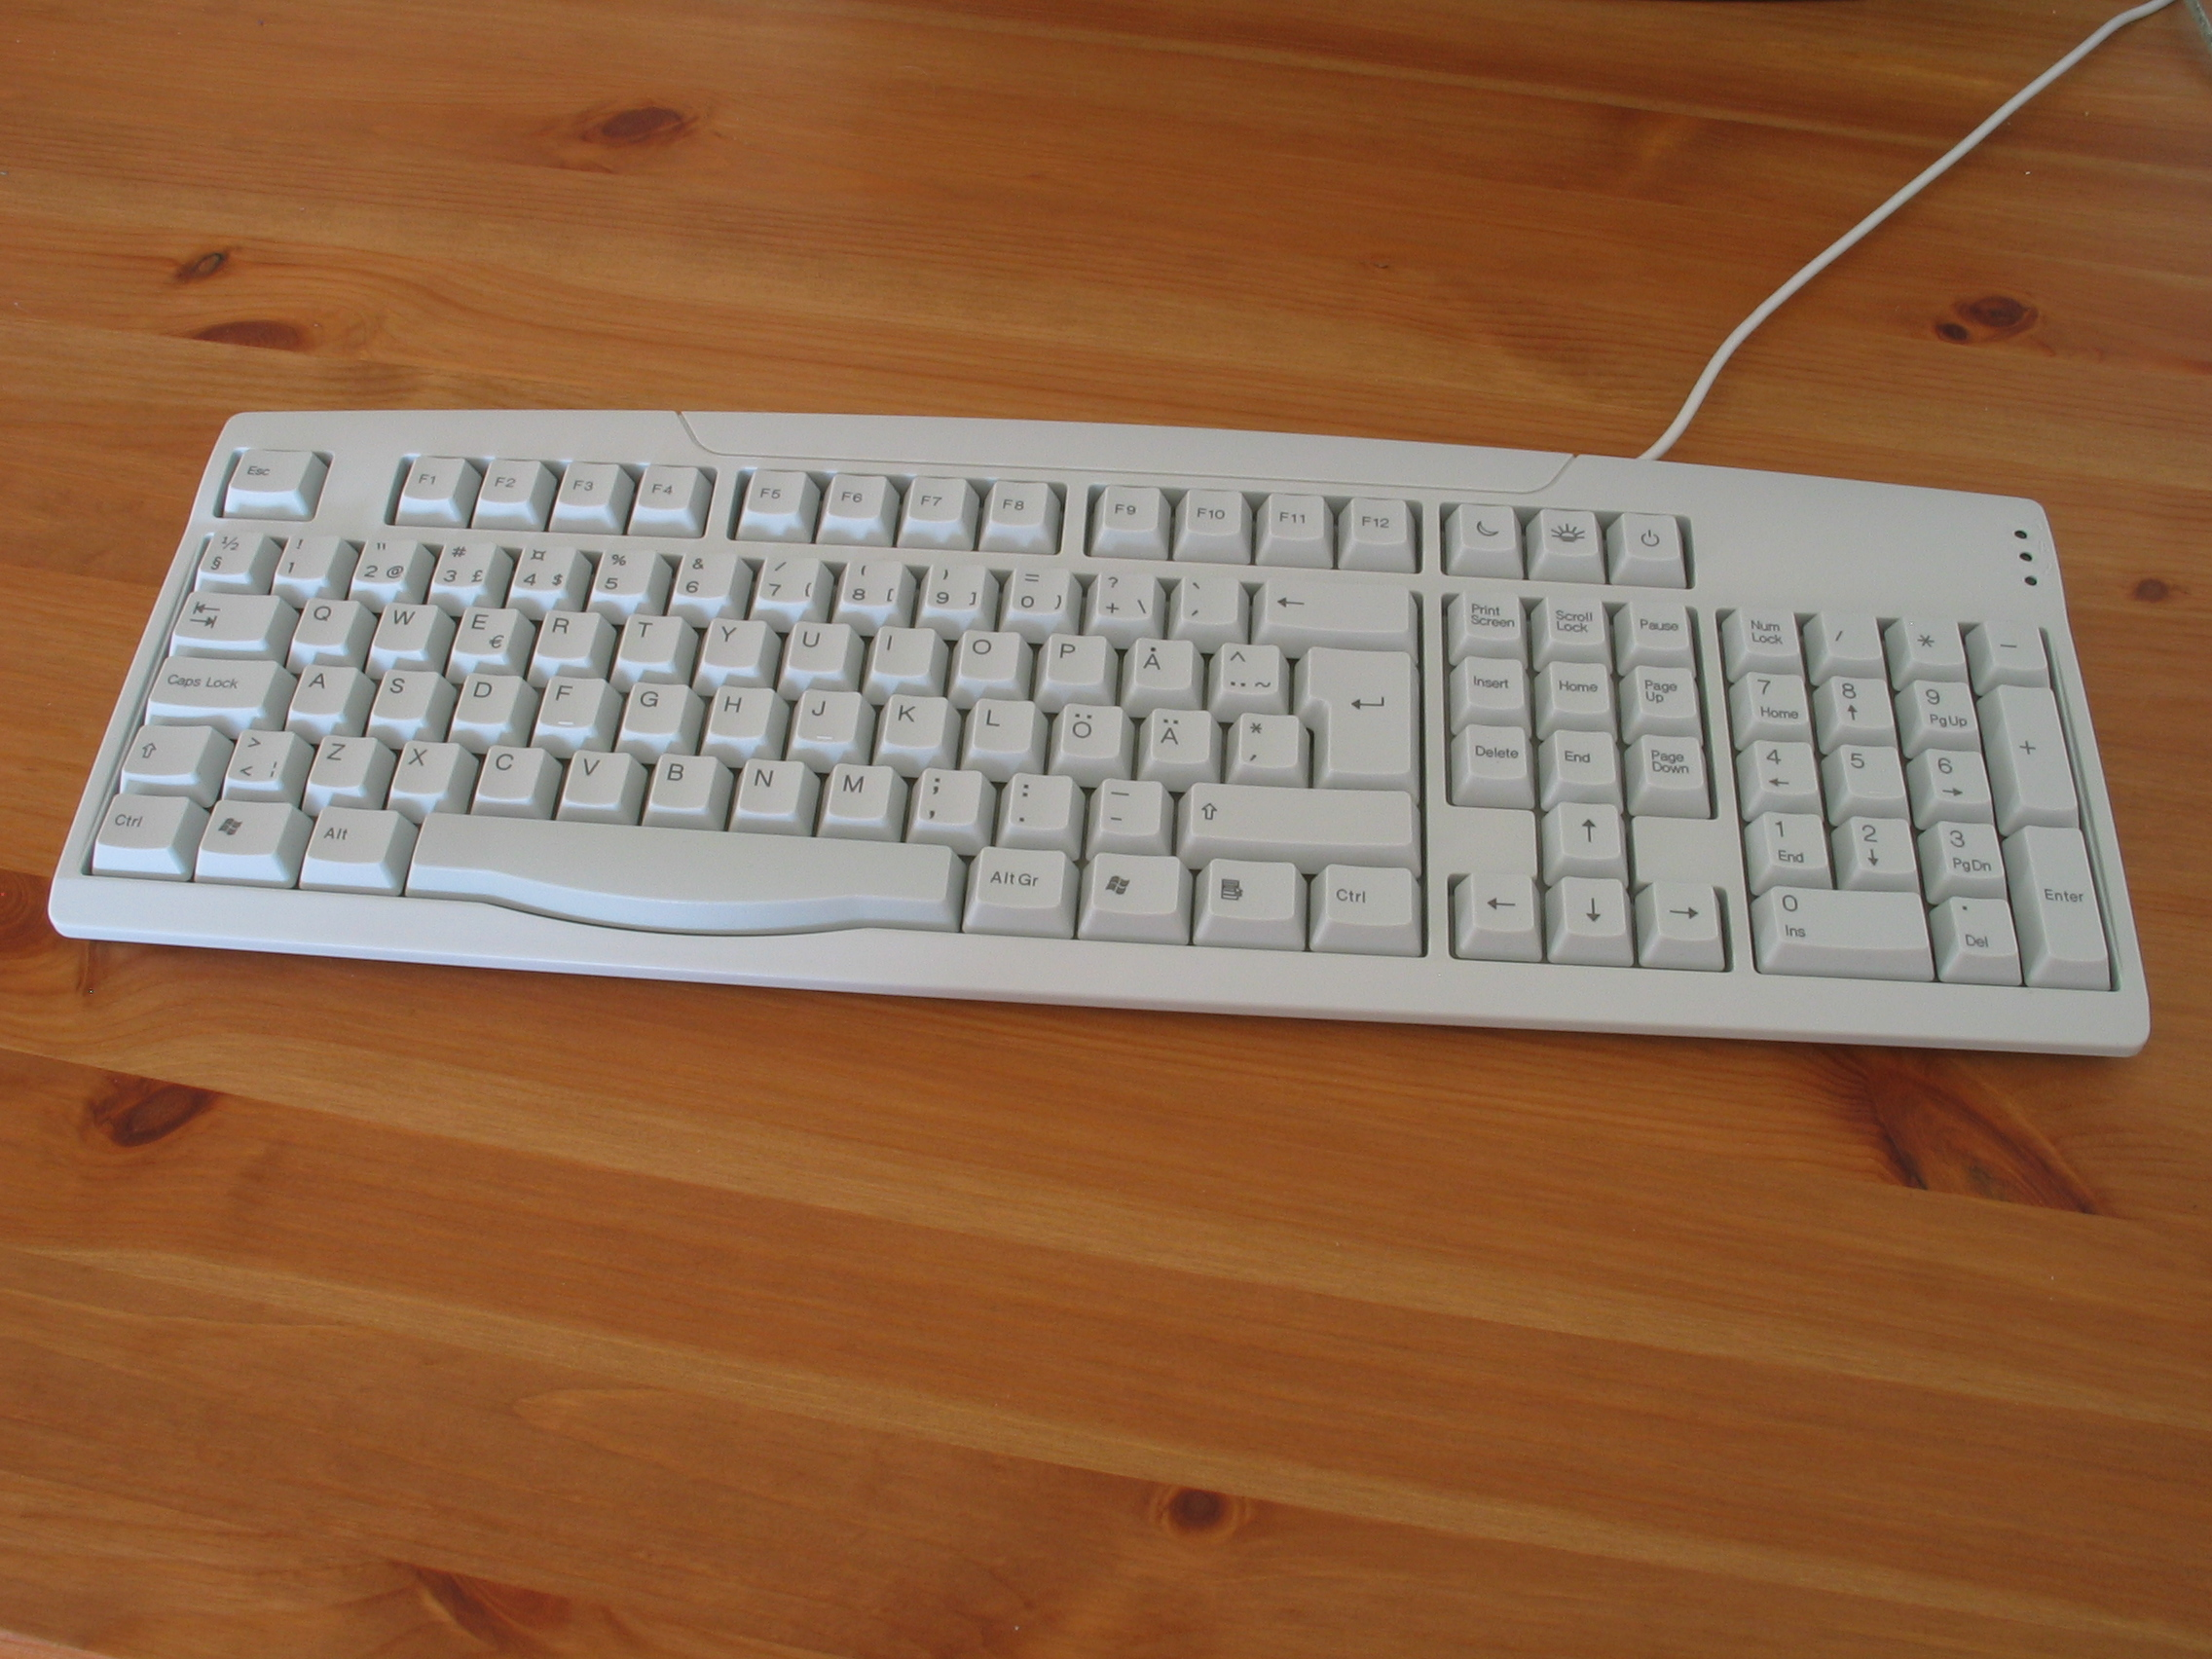 Swedish keyboard